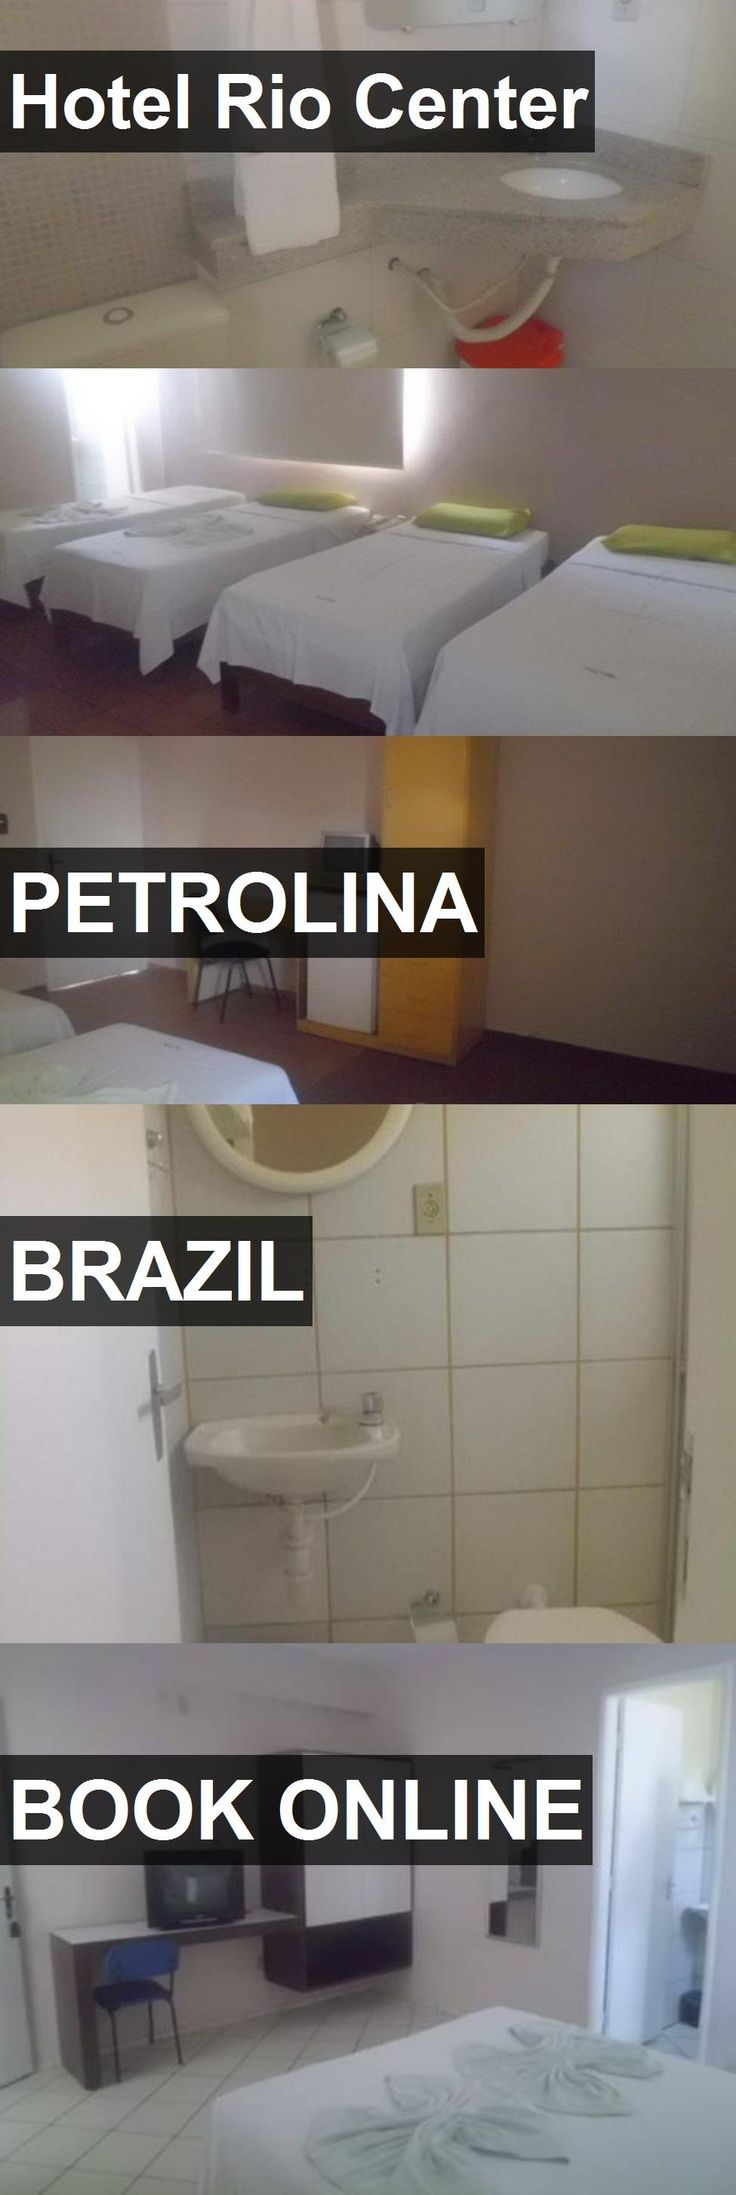 Hotel Hotel Rio Center in Petrolina, Brazil. For more information, photos, reviews and best prices please follow the link. #Brazil #Petrolina #HotelRioCenter #hotel #travel #vacation